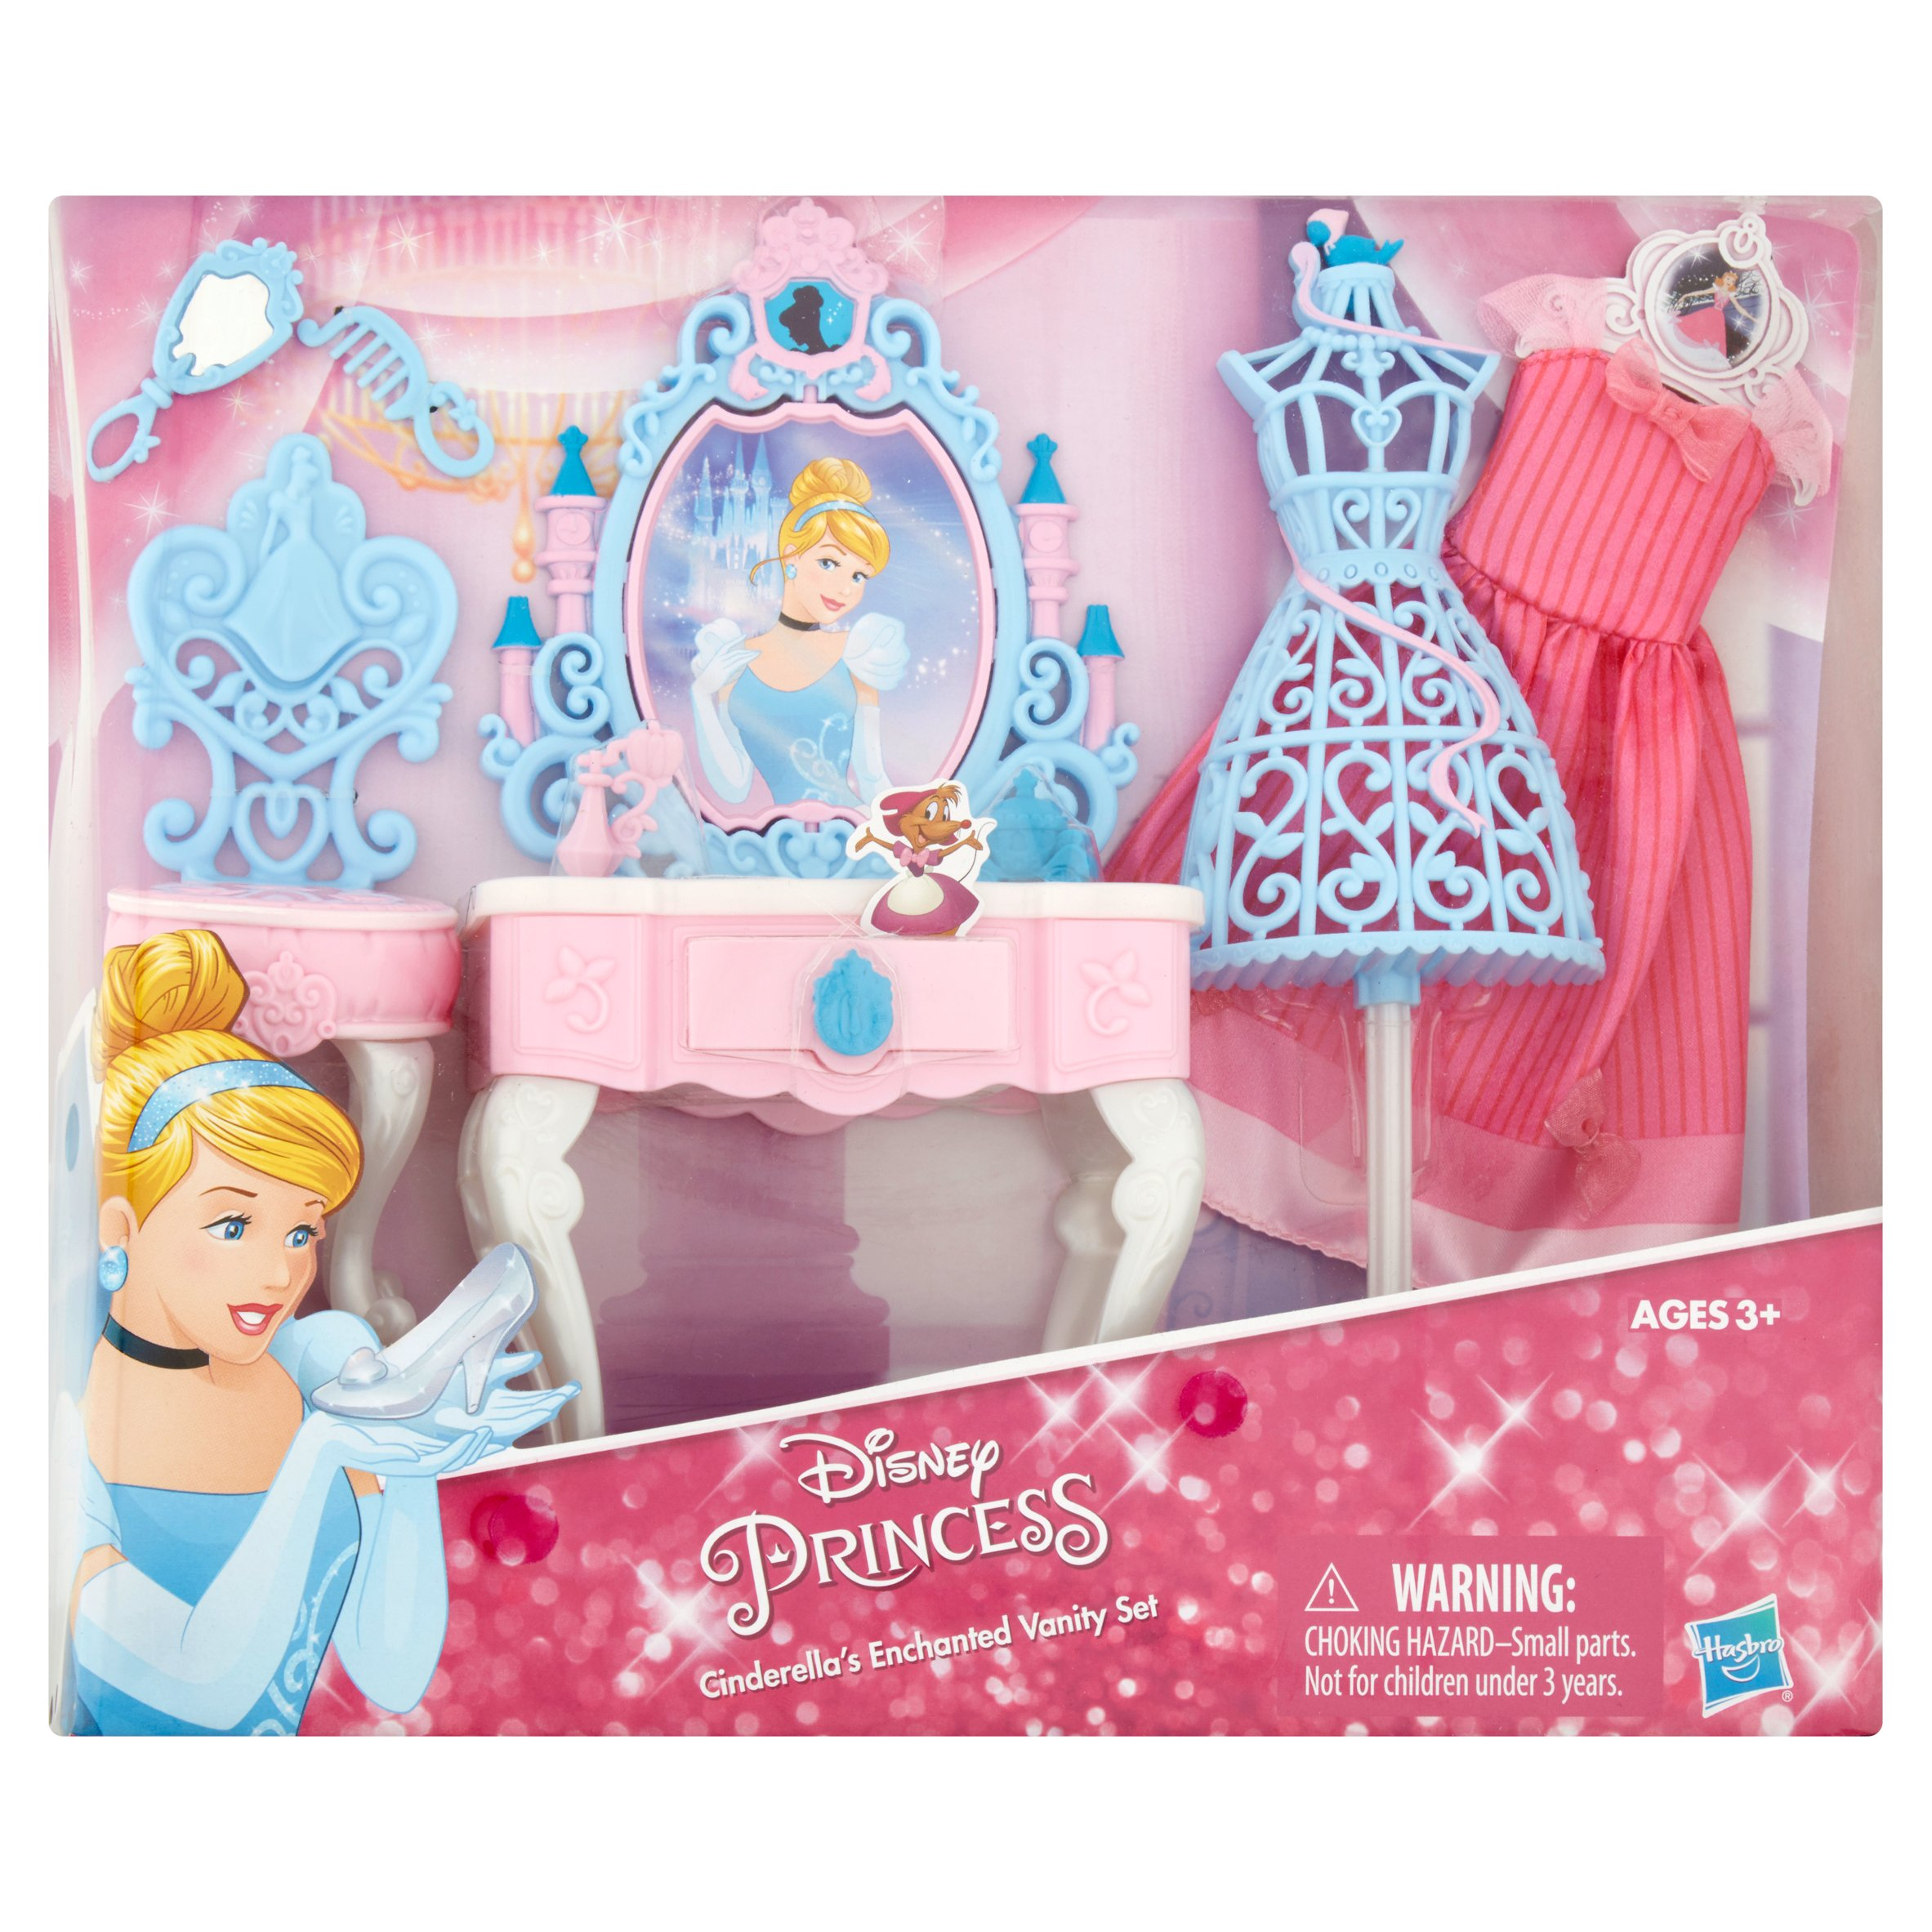 Hasbro Disney Princess Cinderella's Enchanted Vanity Set Ages 3+ by Hasbro